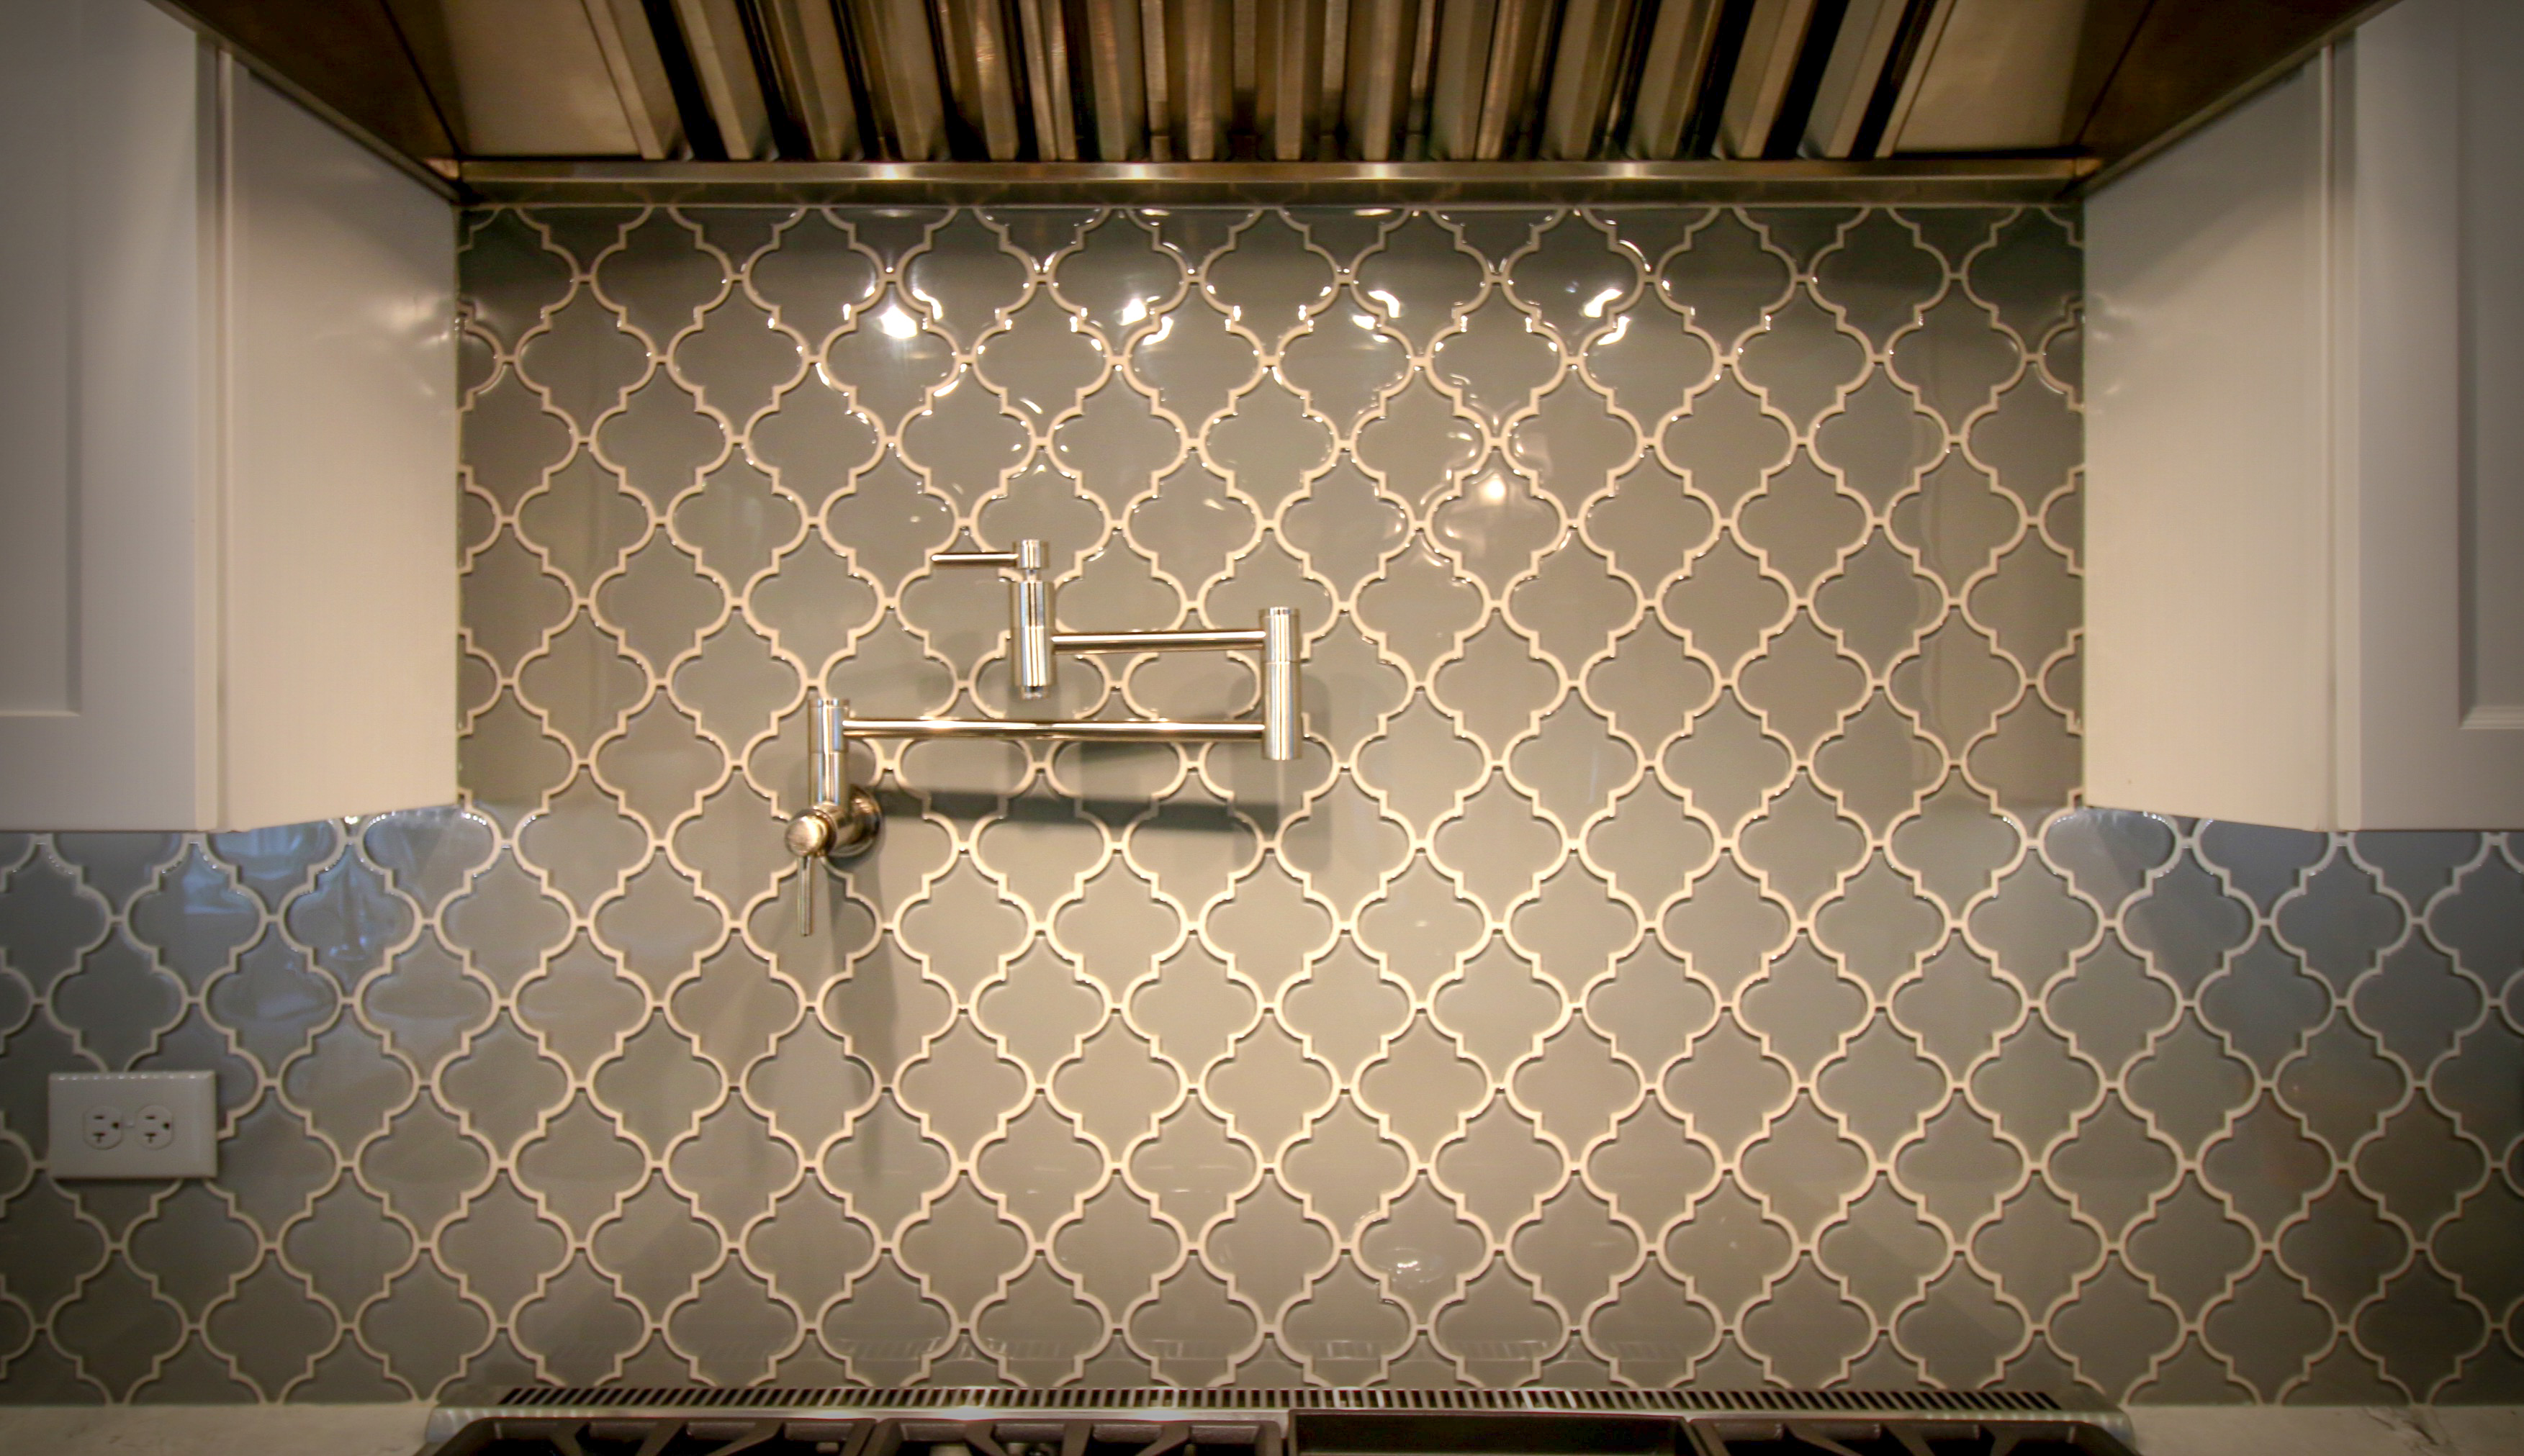 Decorative Tile Backsplash with Pot Filler